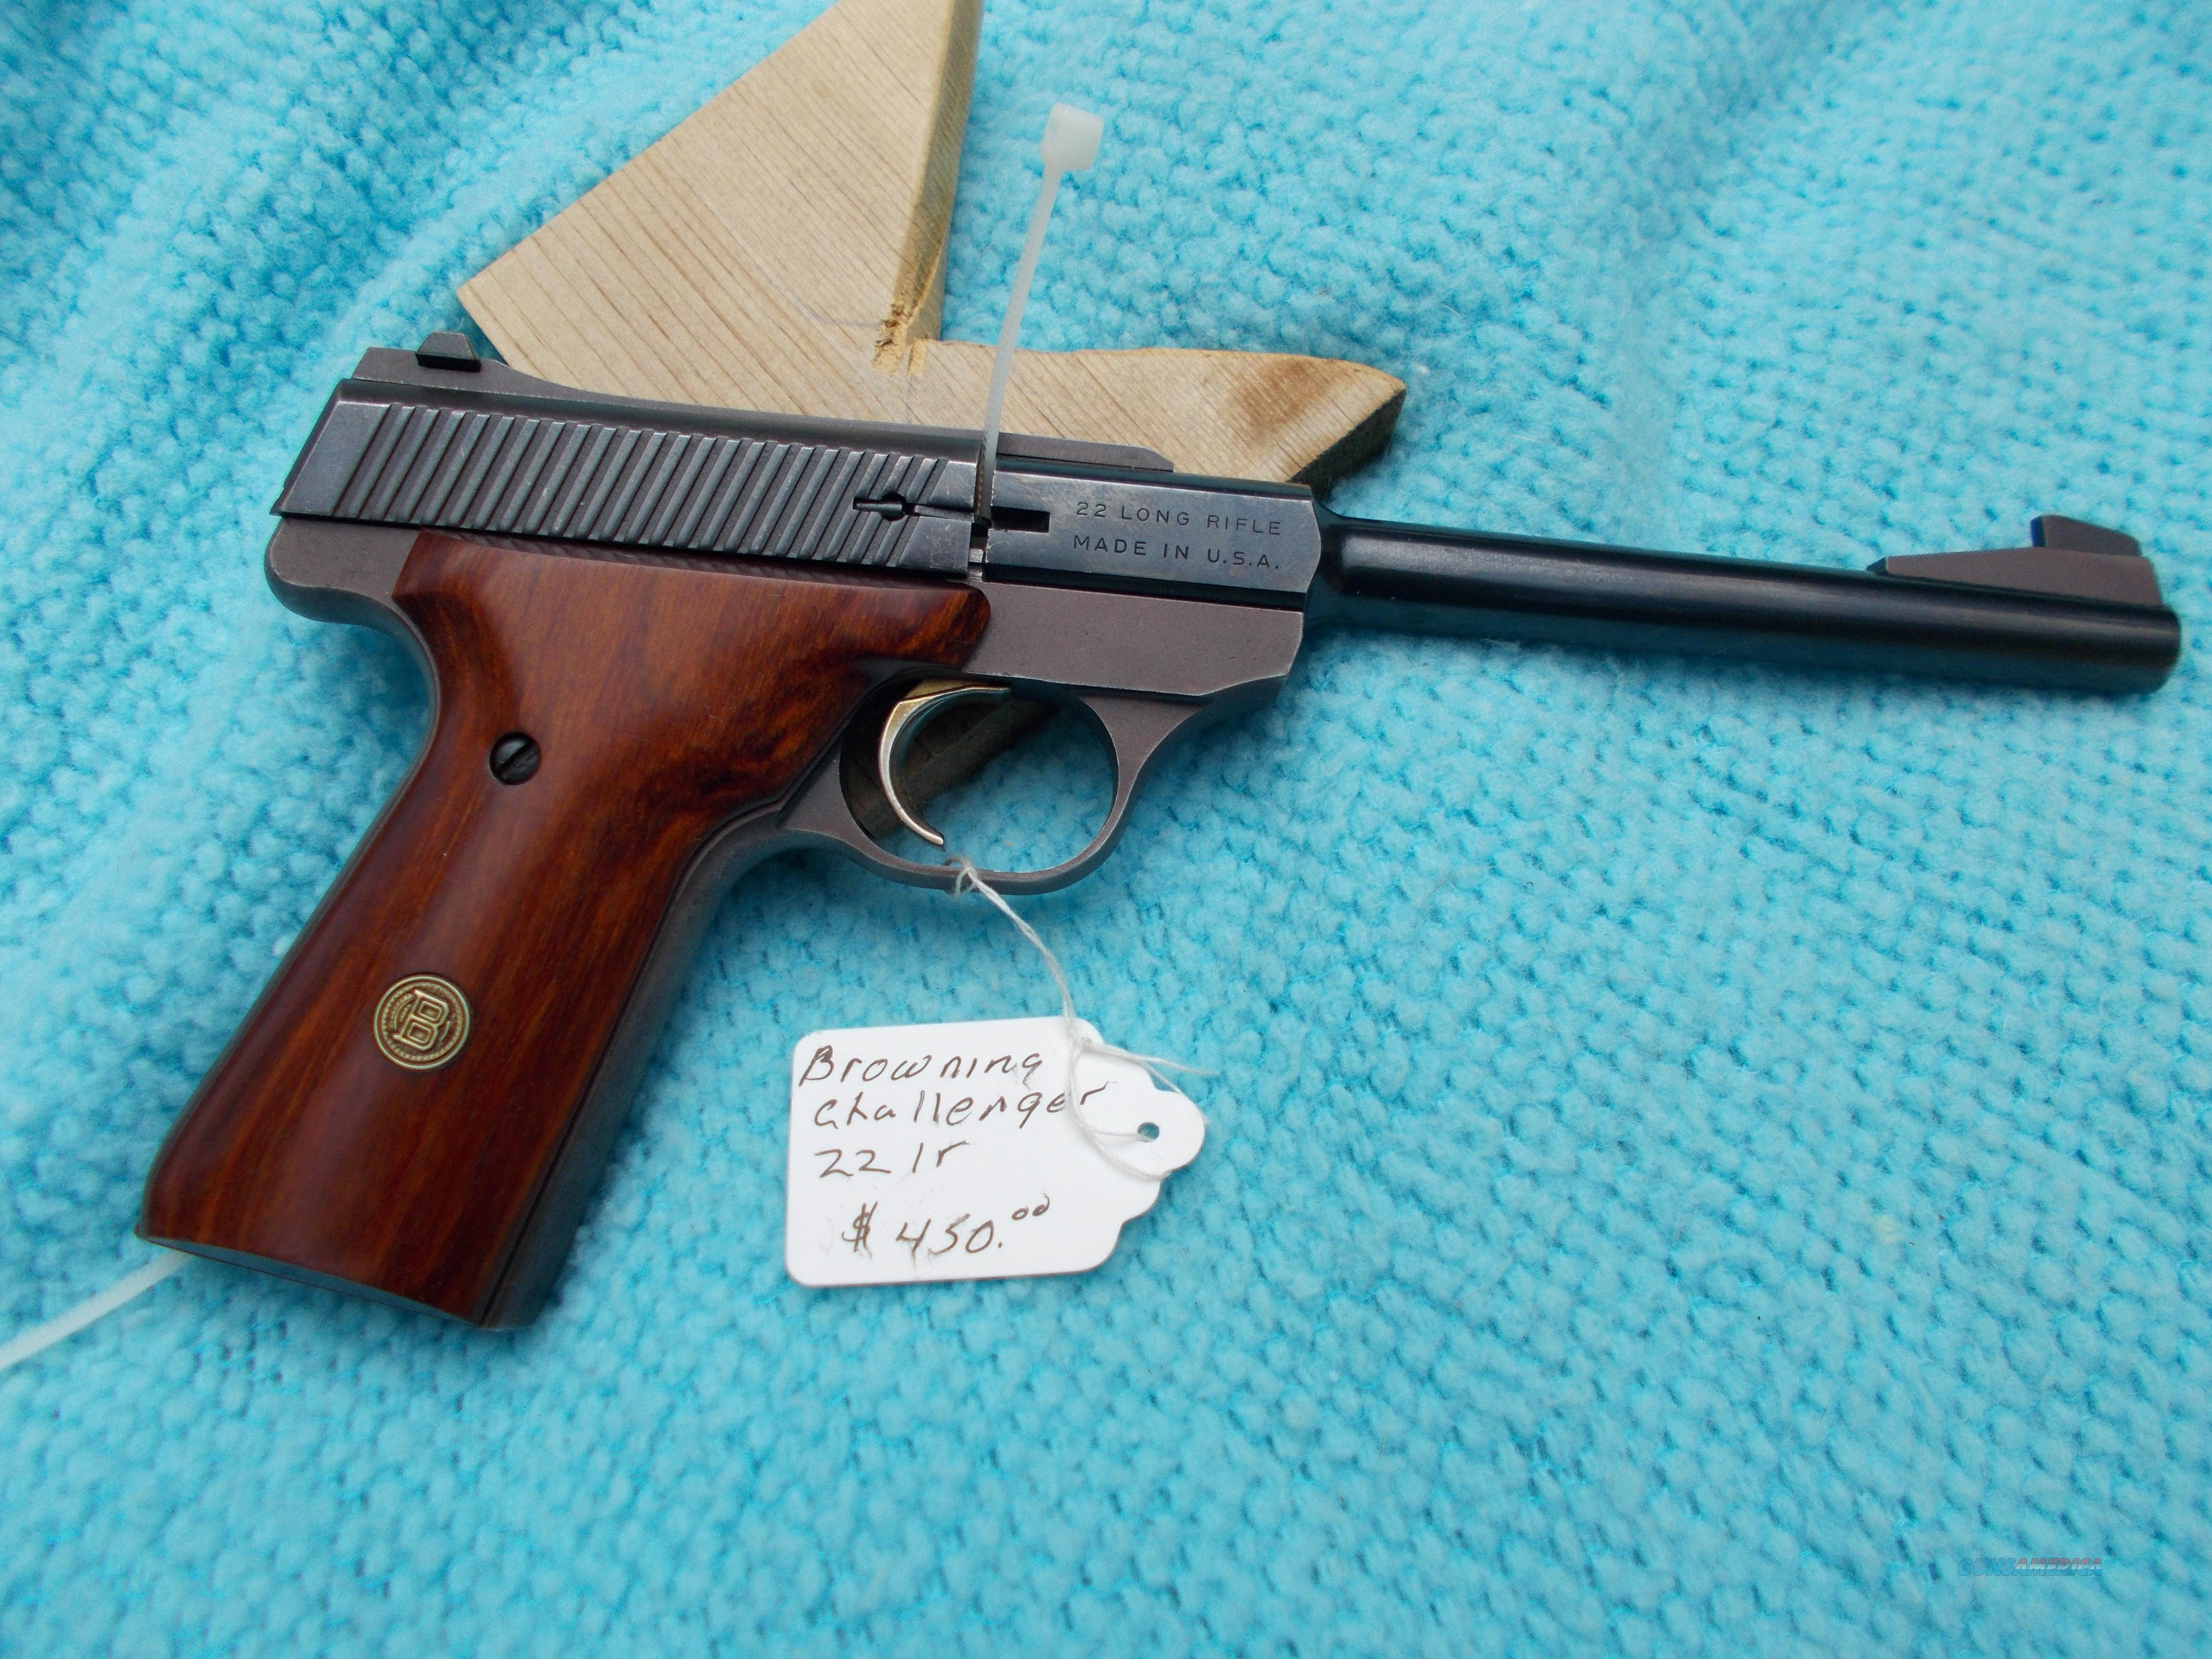 browning challenger 22lr  Guns > Pistols > Browning Pistols > Other Autos